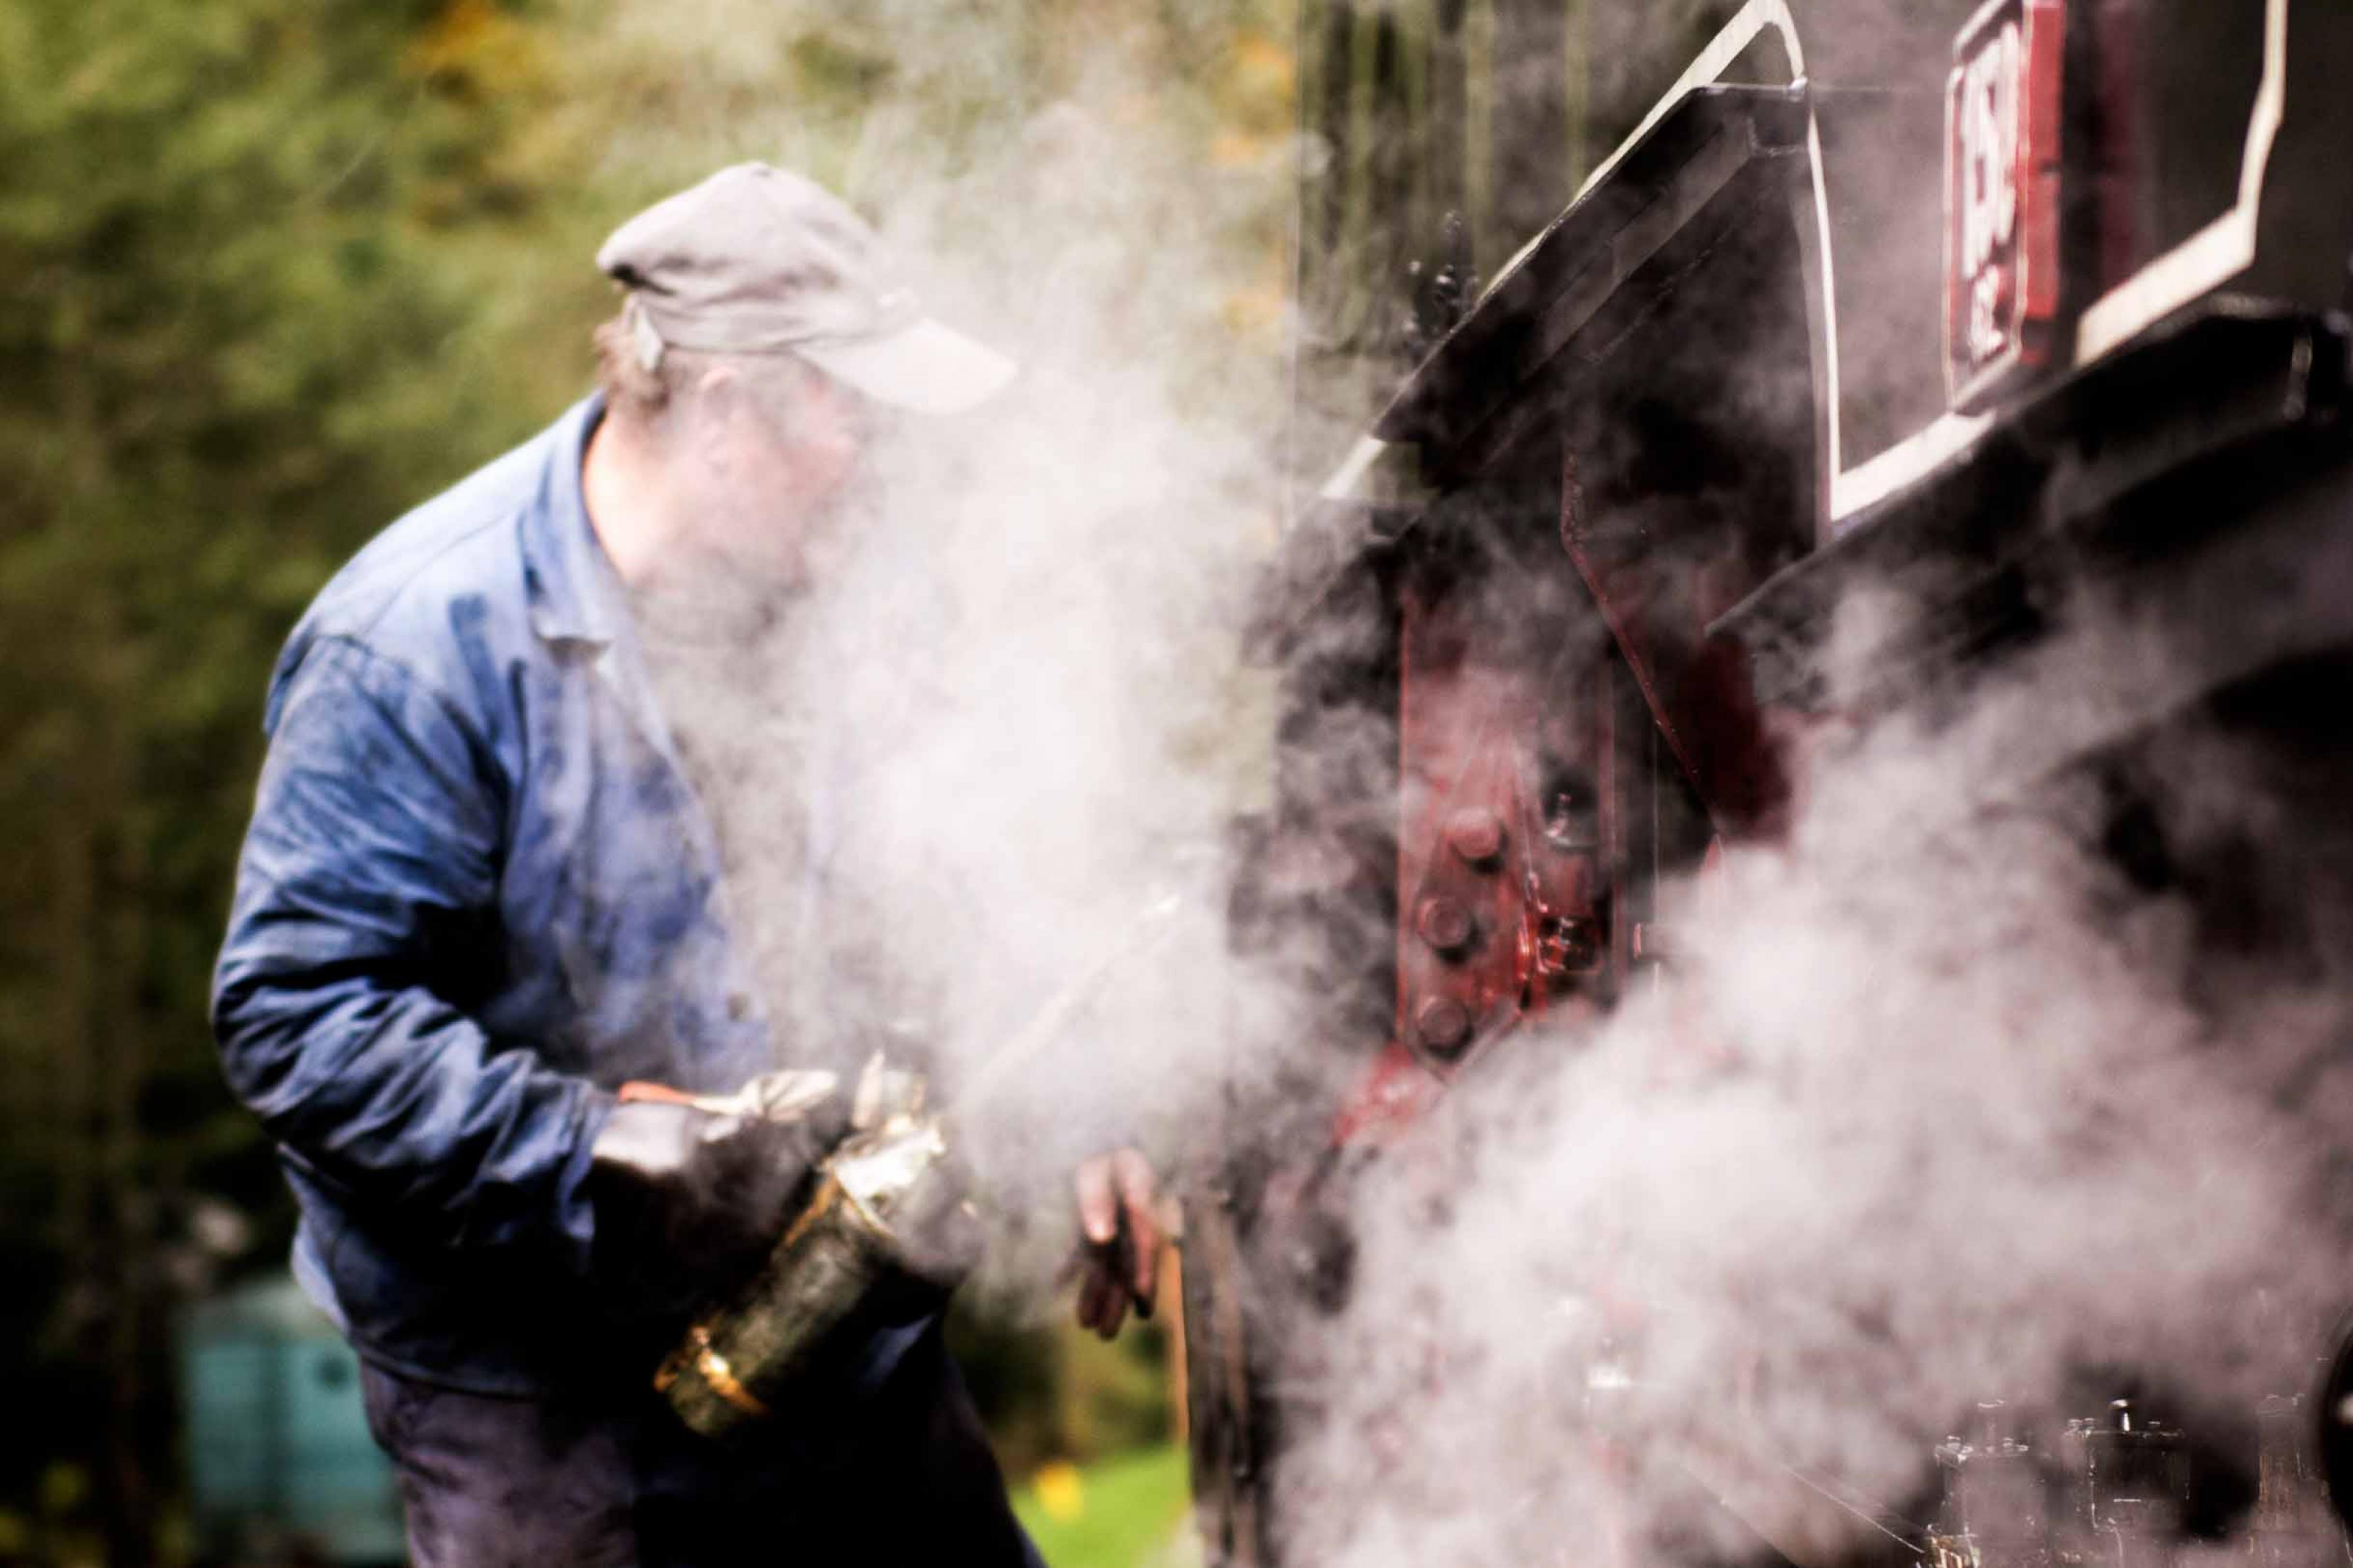 Man works on side of train in cloud of steam